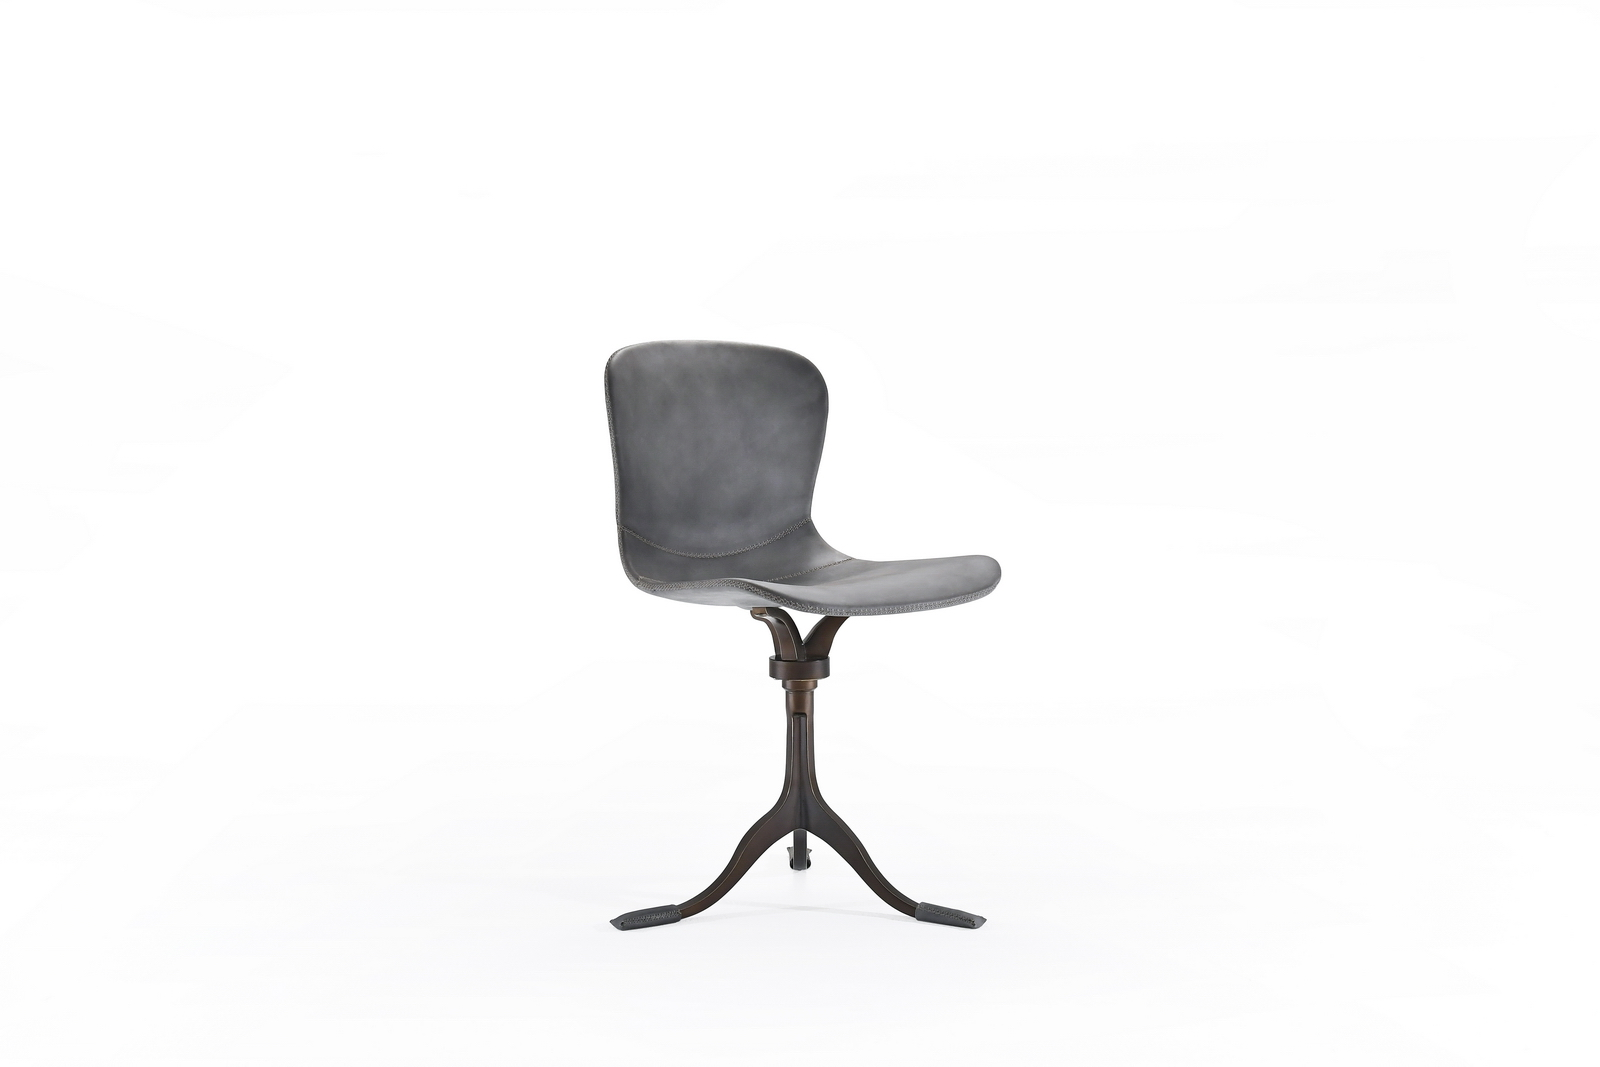 PTendercool-Chair-PT43-BS3-GY-210615-04